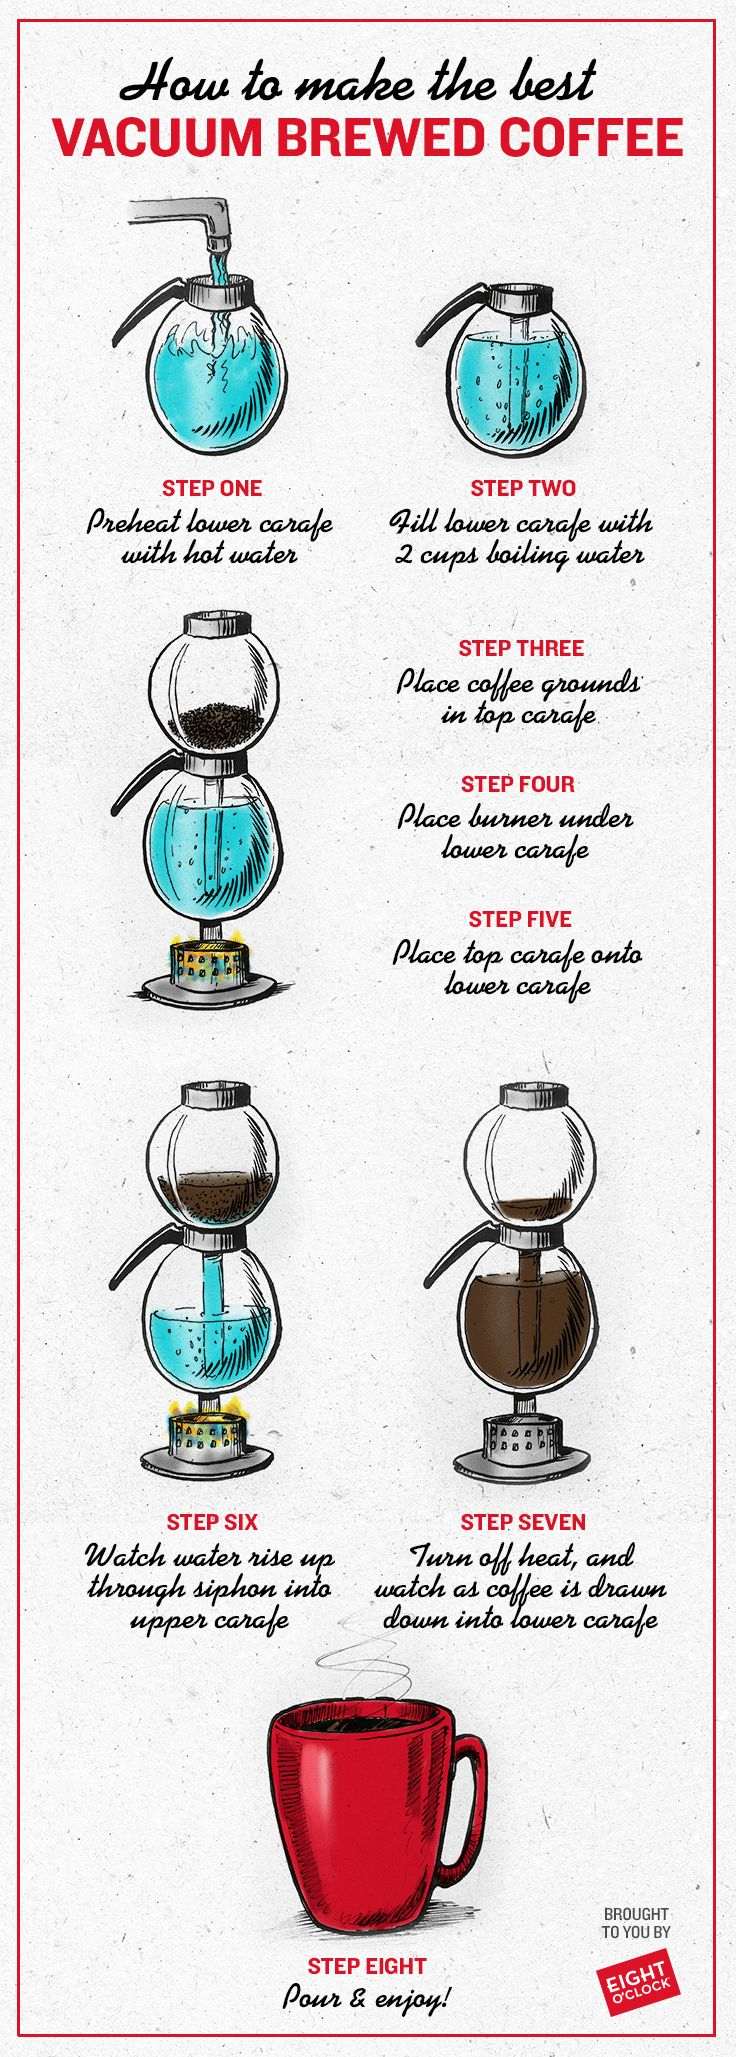 Your high school chemistry teacher would love this! It's probably the most dramatic way ever to brew coffee - and it produces a clean, crisp, smooth flavor. Practice a few times on your own to get the technique down, and then - it's show time! Click on the pin to get all the Eight O'Clock blends you can use to try out vacuum brewed coffee!